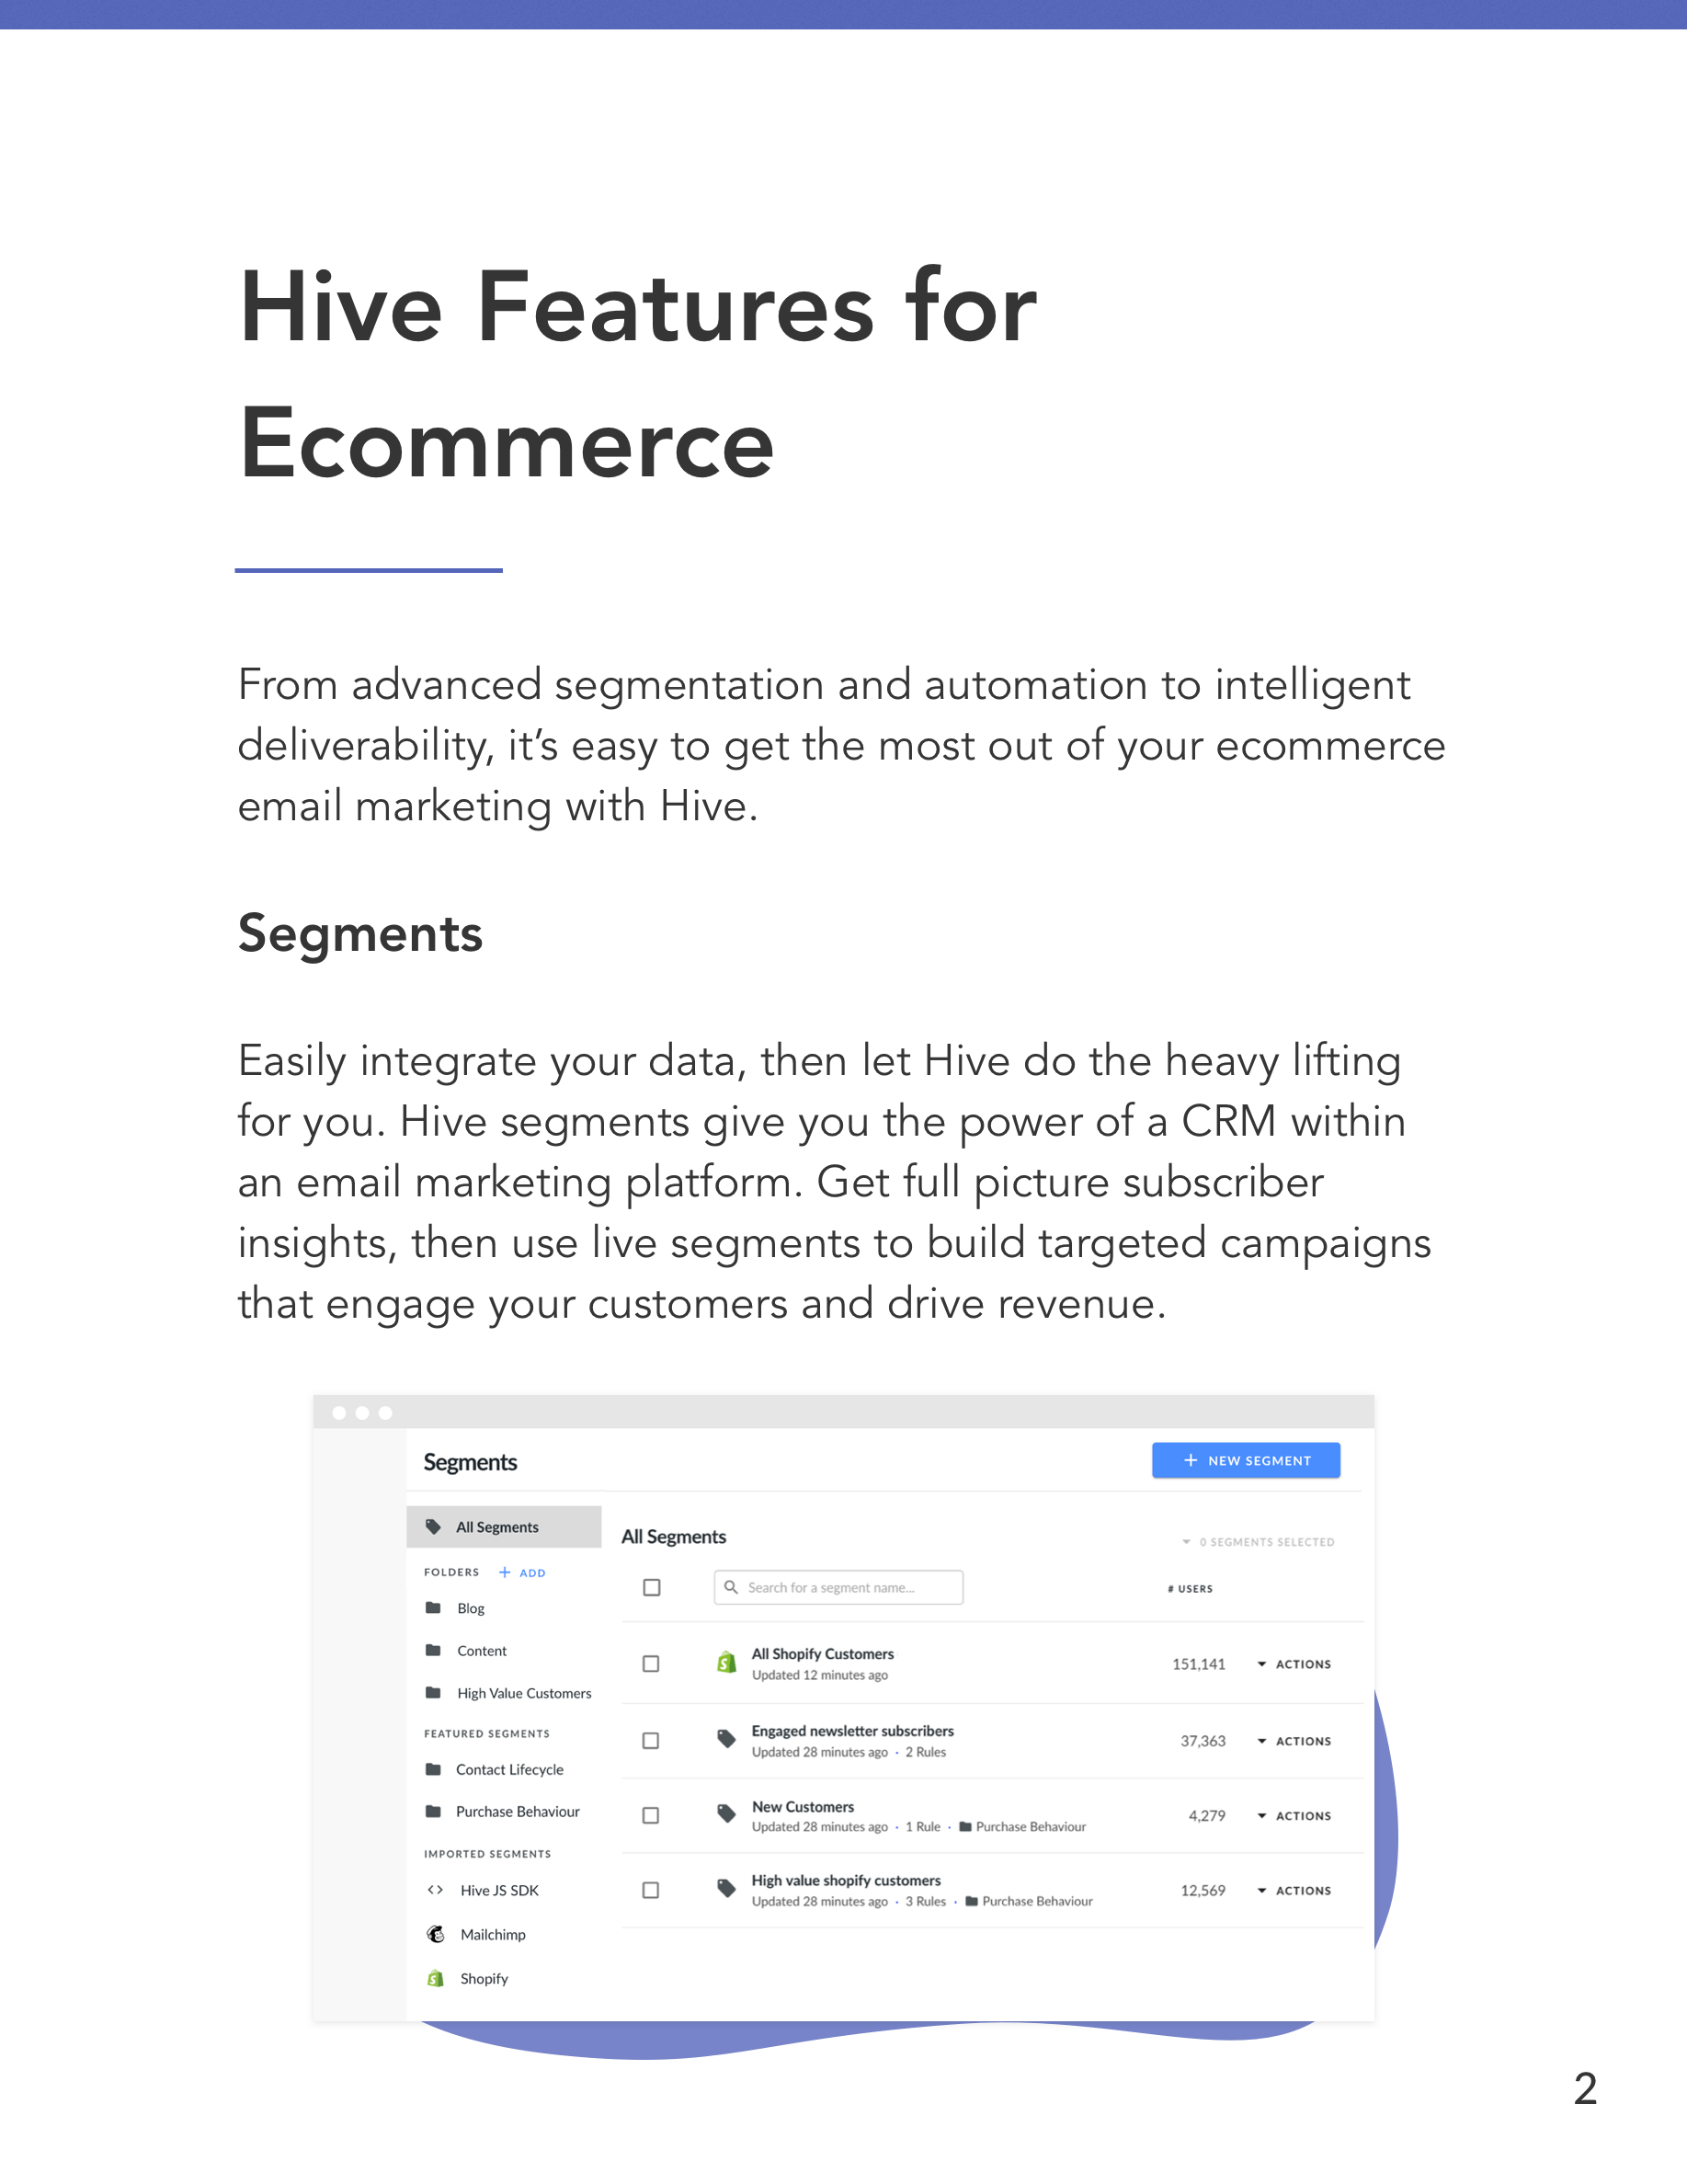 Hive Features for Ecommerce Preview Page 2